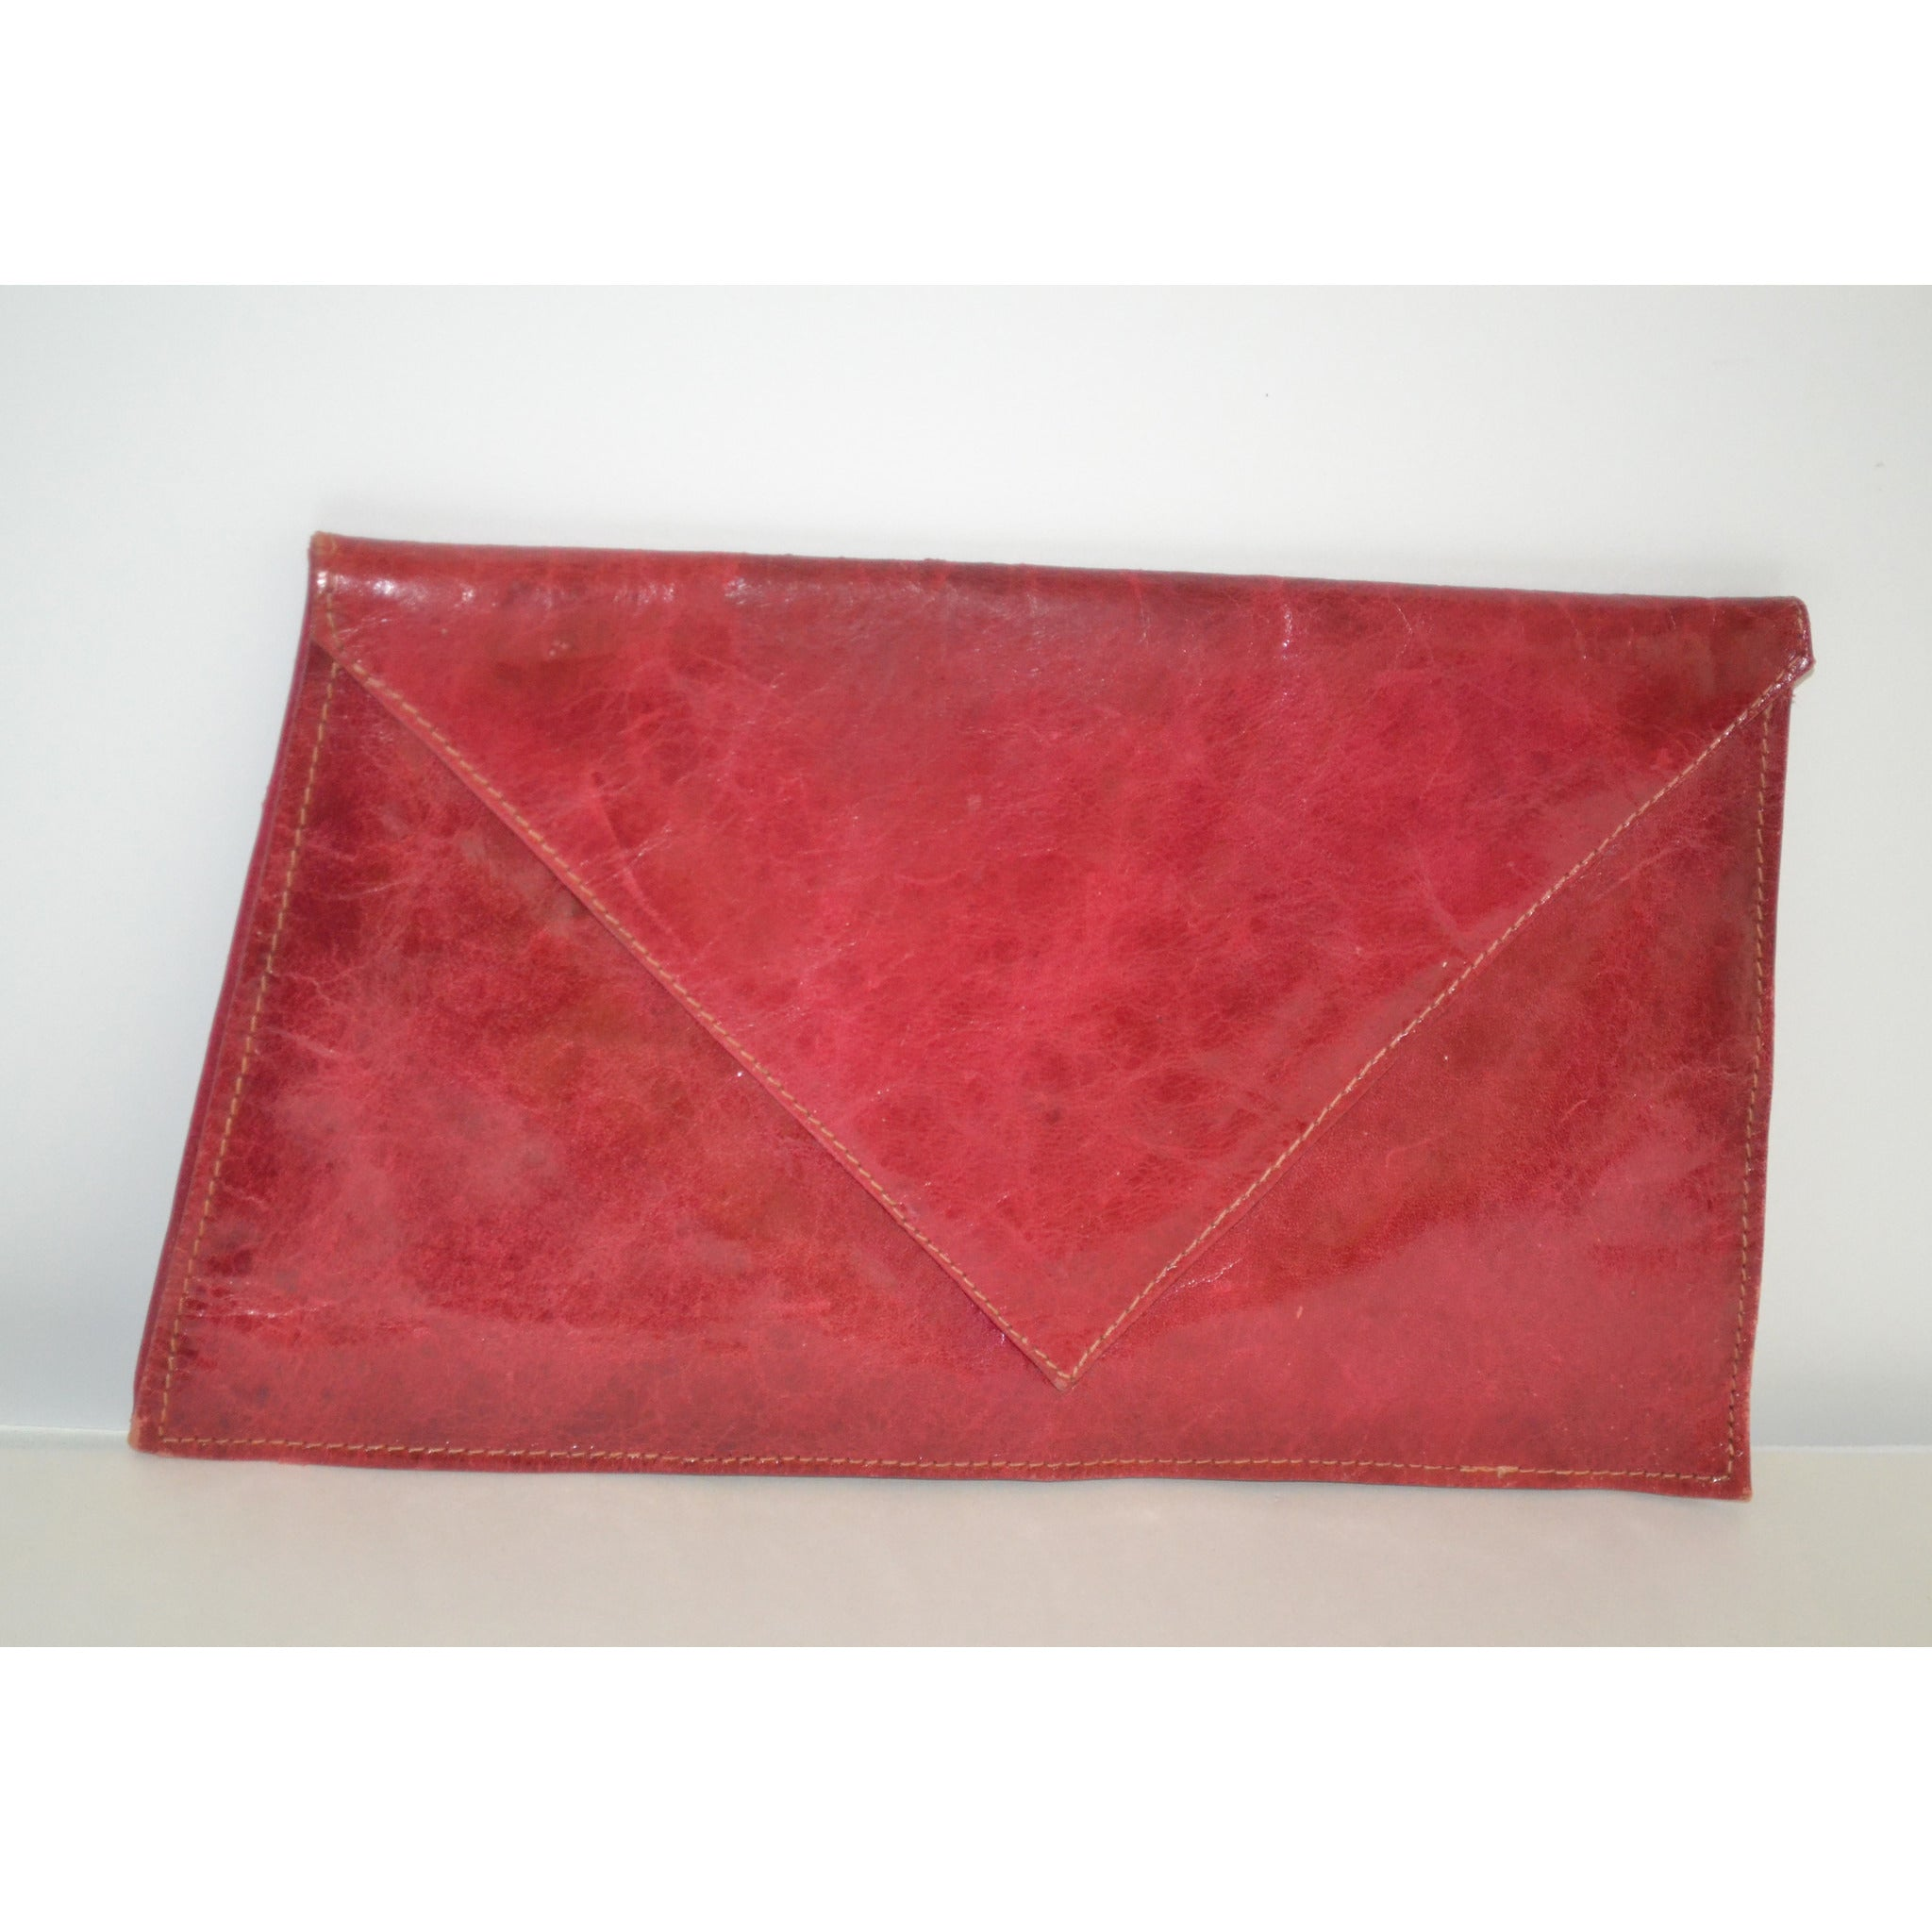 Vintage Red Leather Envelope Clutch Purse